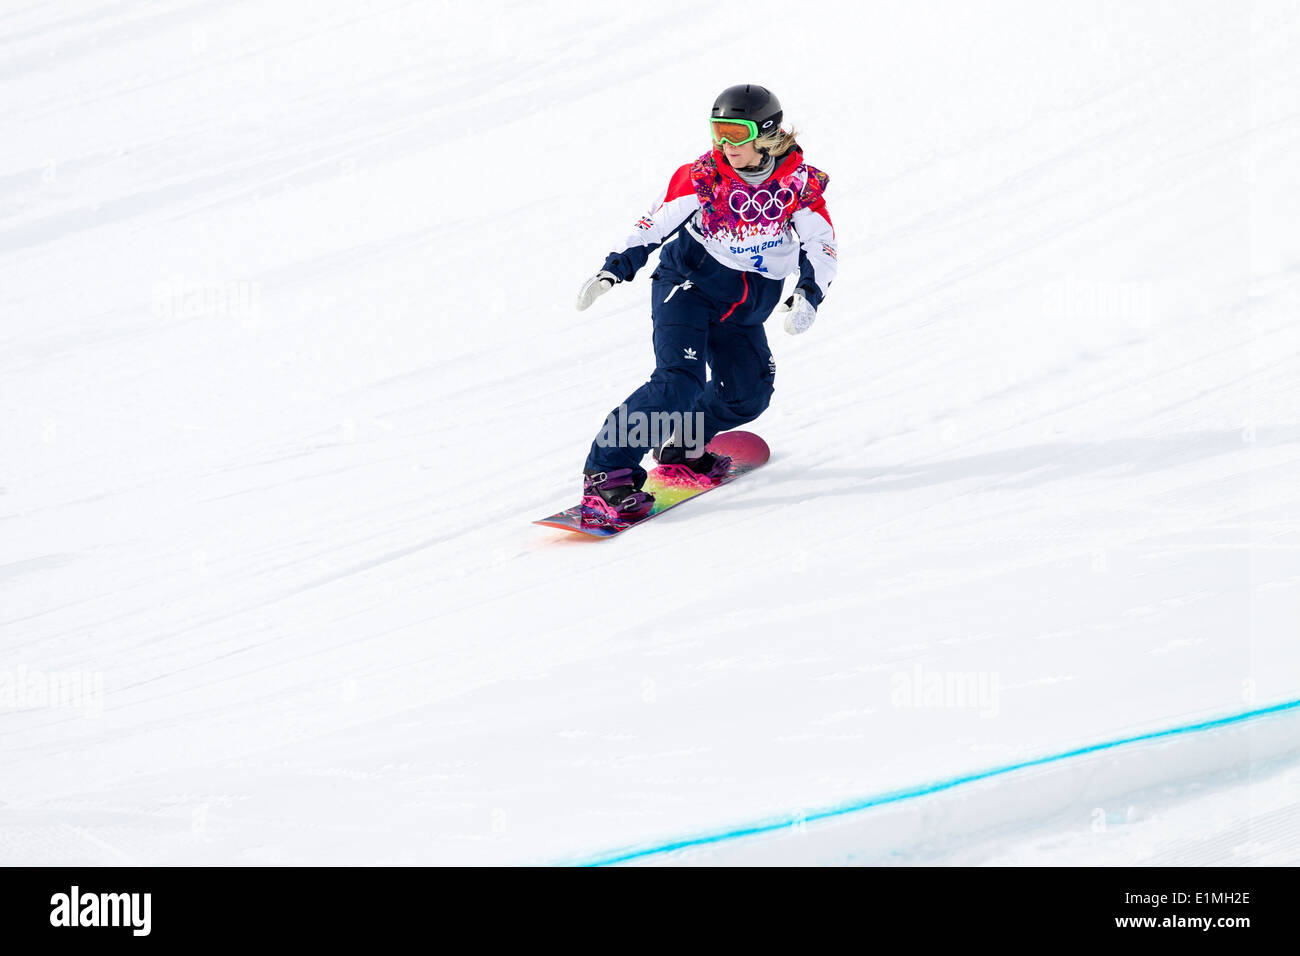 Jenny Jones (GRB) bronze medalist competing in Ladies's Snowboard Slopestyle at the Olympic Winter Games, Sochi 2014 - Stock Image